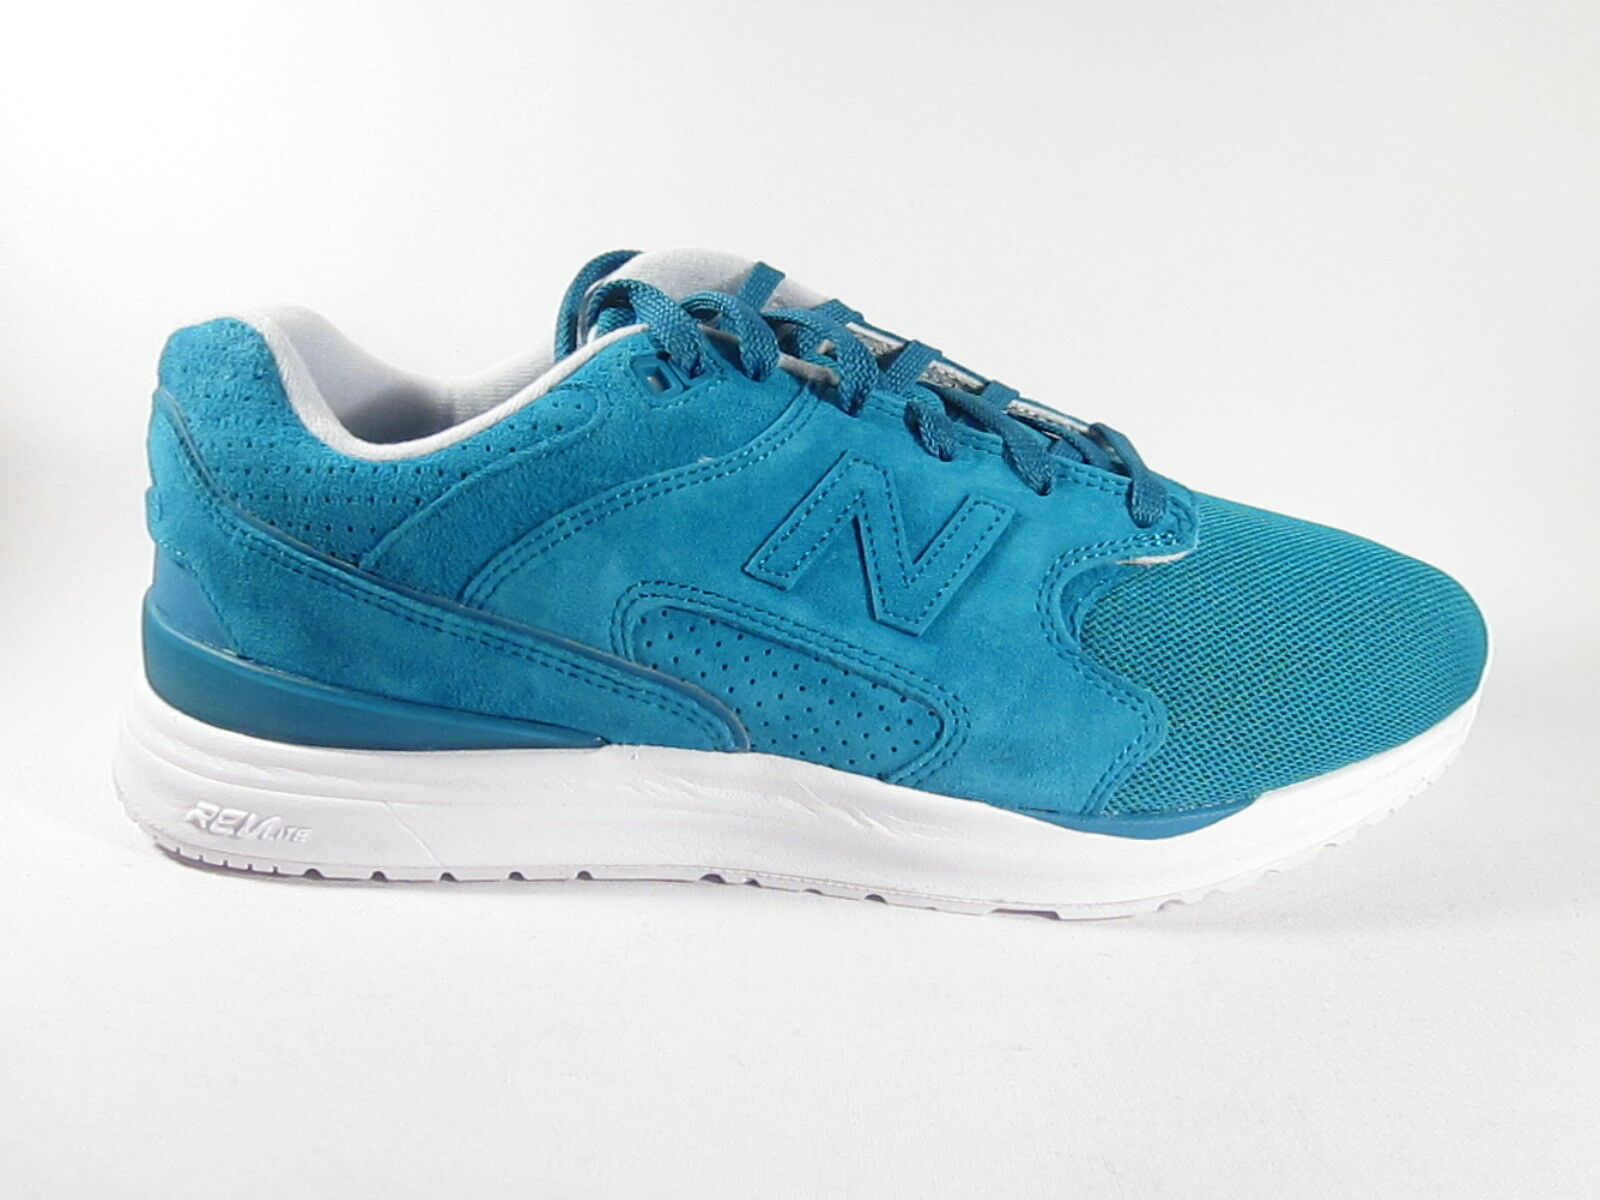 MENS ORIGINAL NEW BALANCE 1550 BALANCE RUNNING blueE TRAINERS SHOES ML1551CB